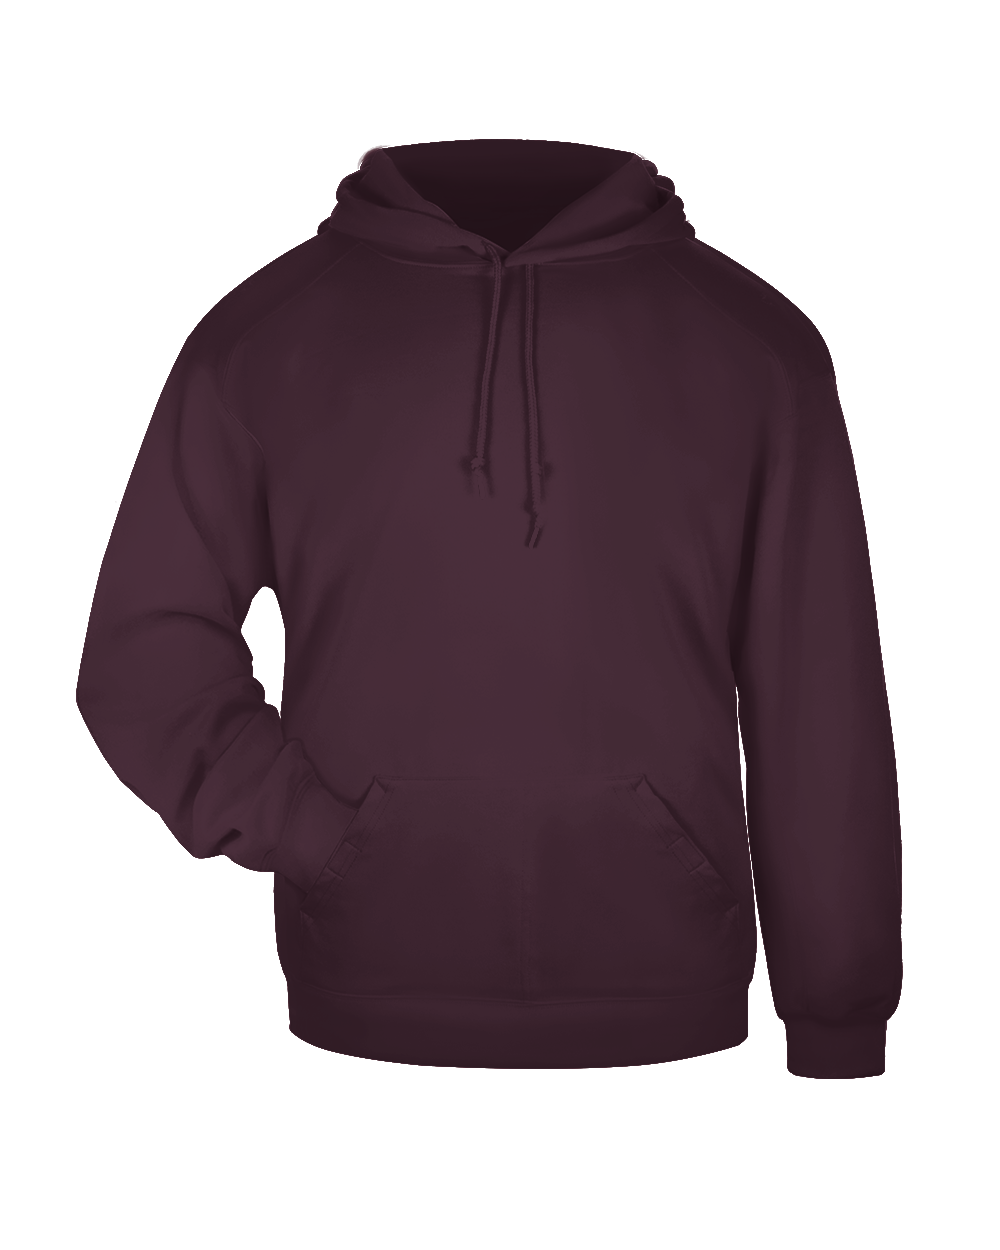 Hooded Sweatshirt - Maroon